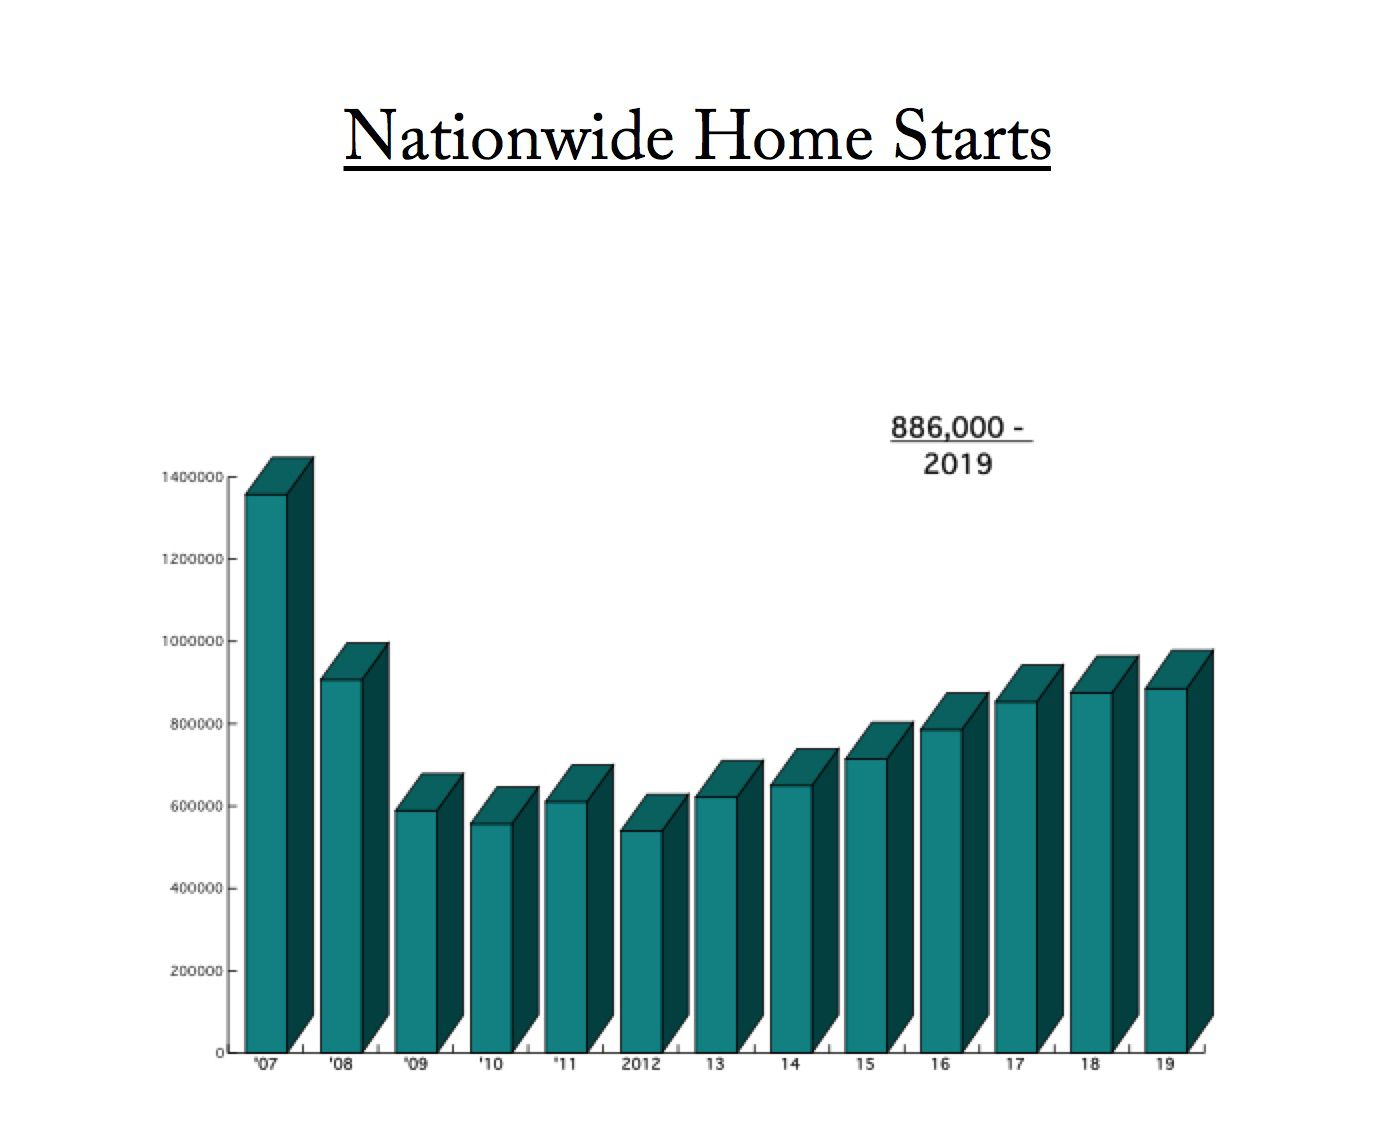 Nationwide home starts still aren't close to where they were before the Great Recession.